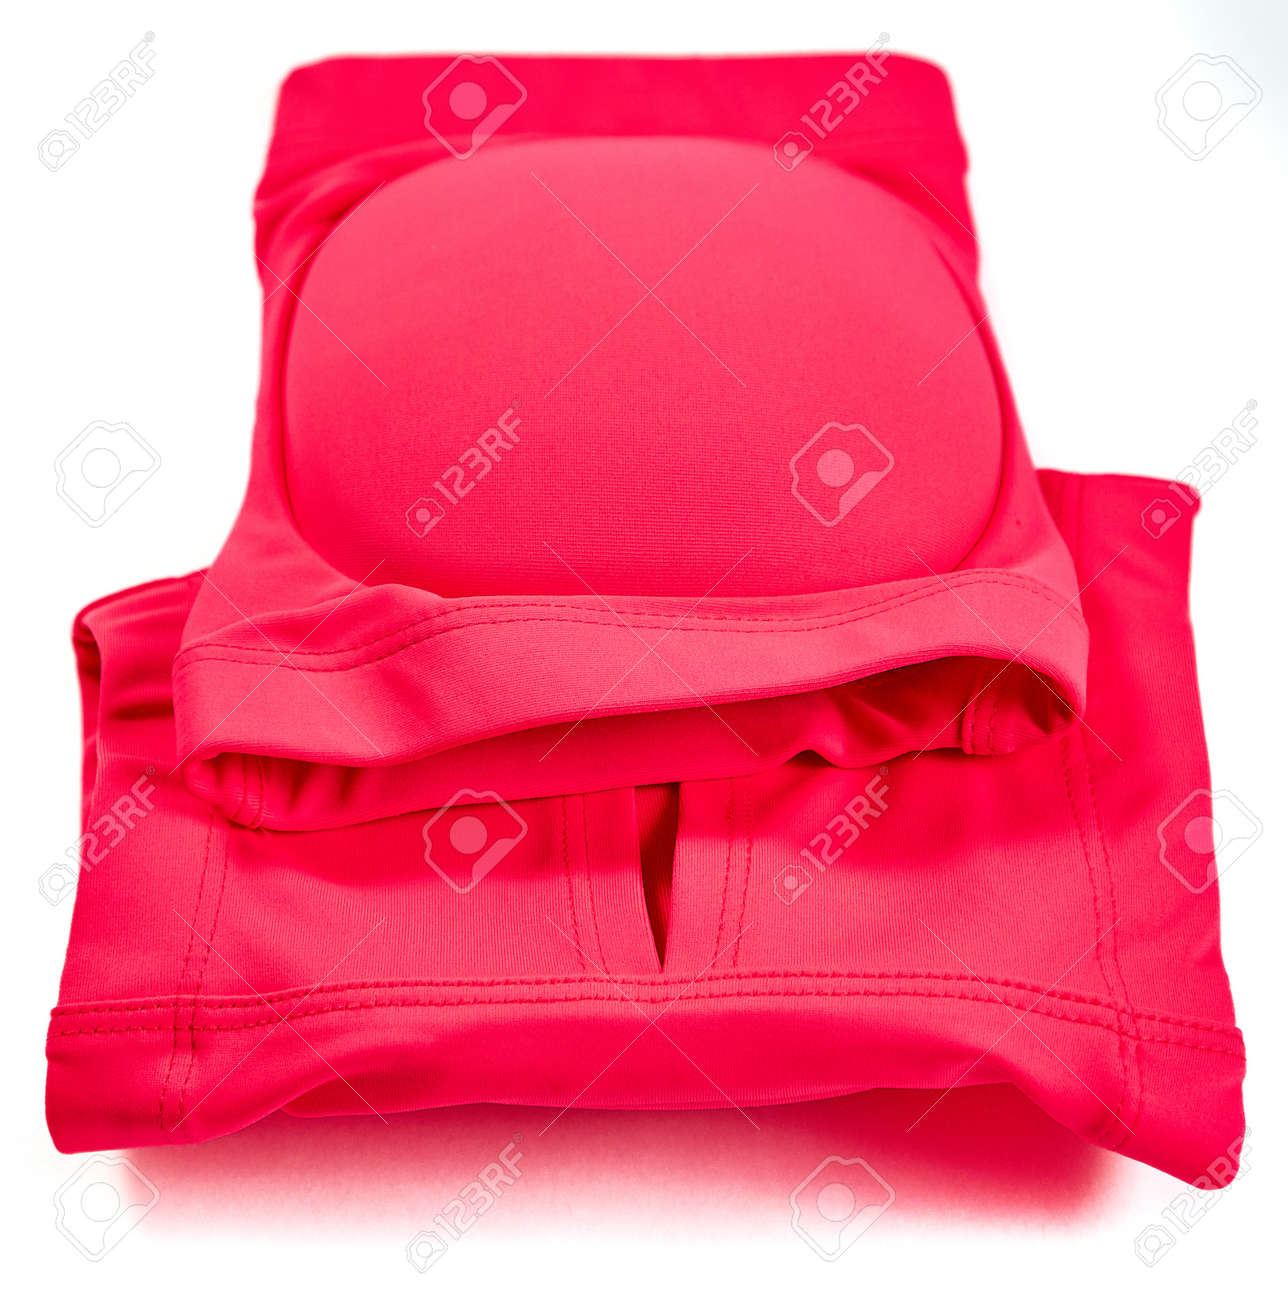 Knee pads for leg protection in rhythmic gymnastics lie on top of each other.The view from the top - 158725048